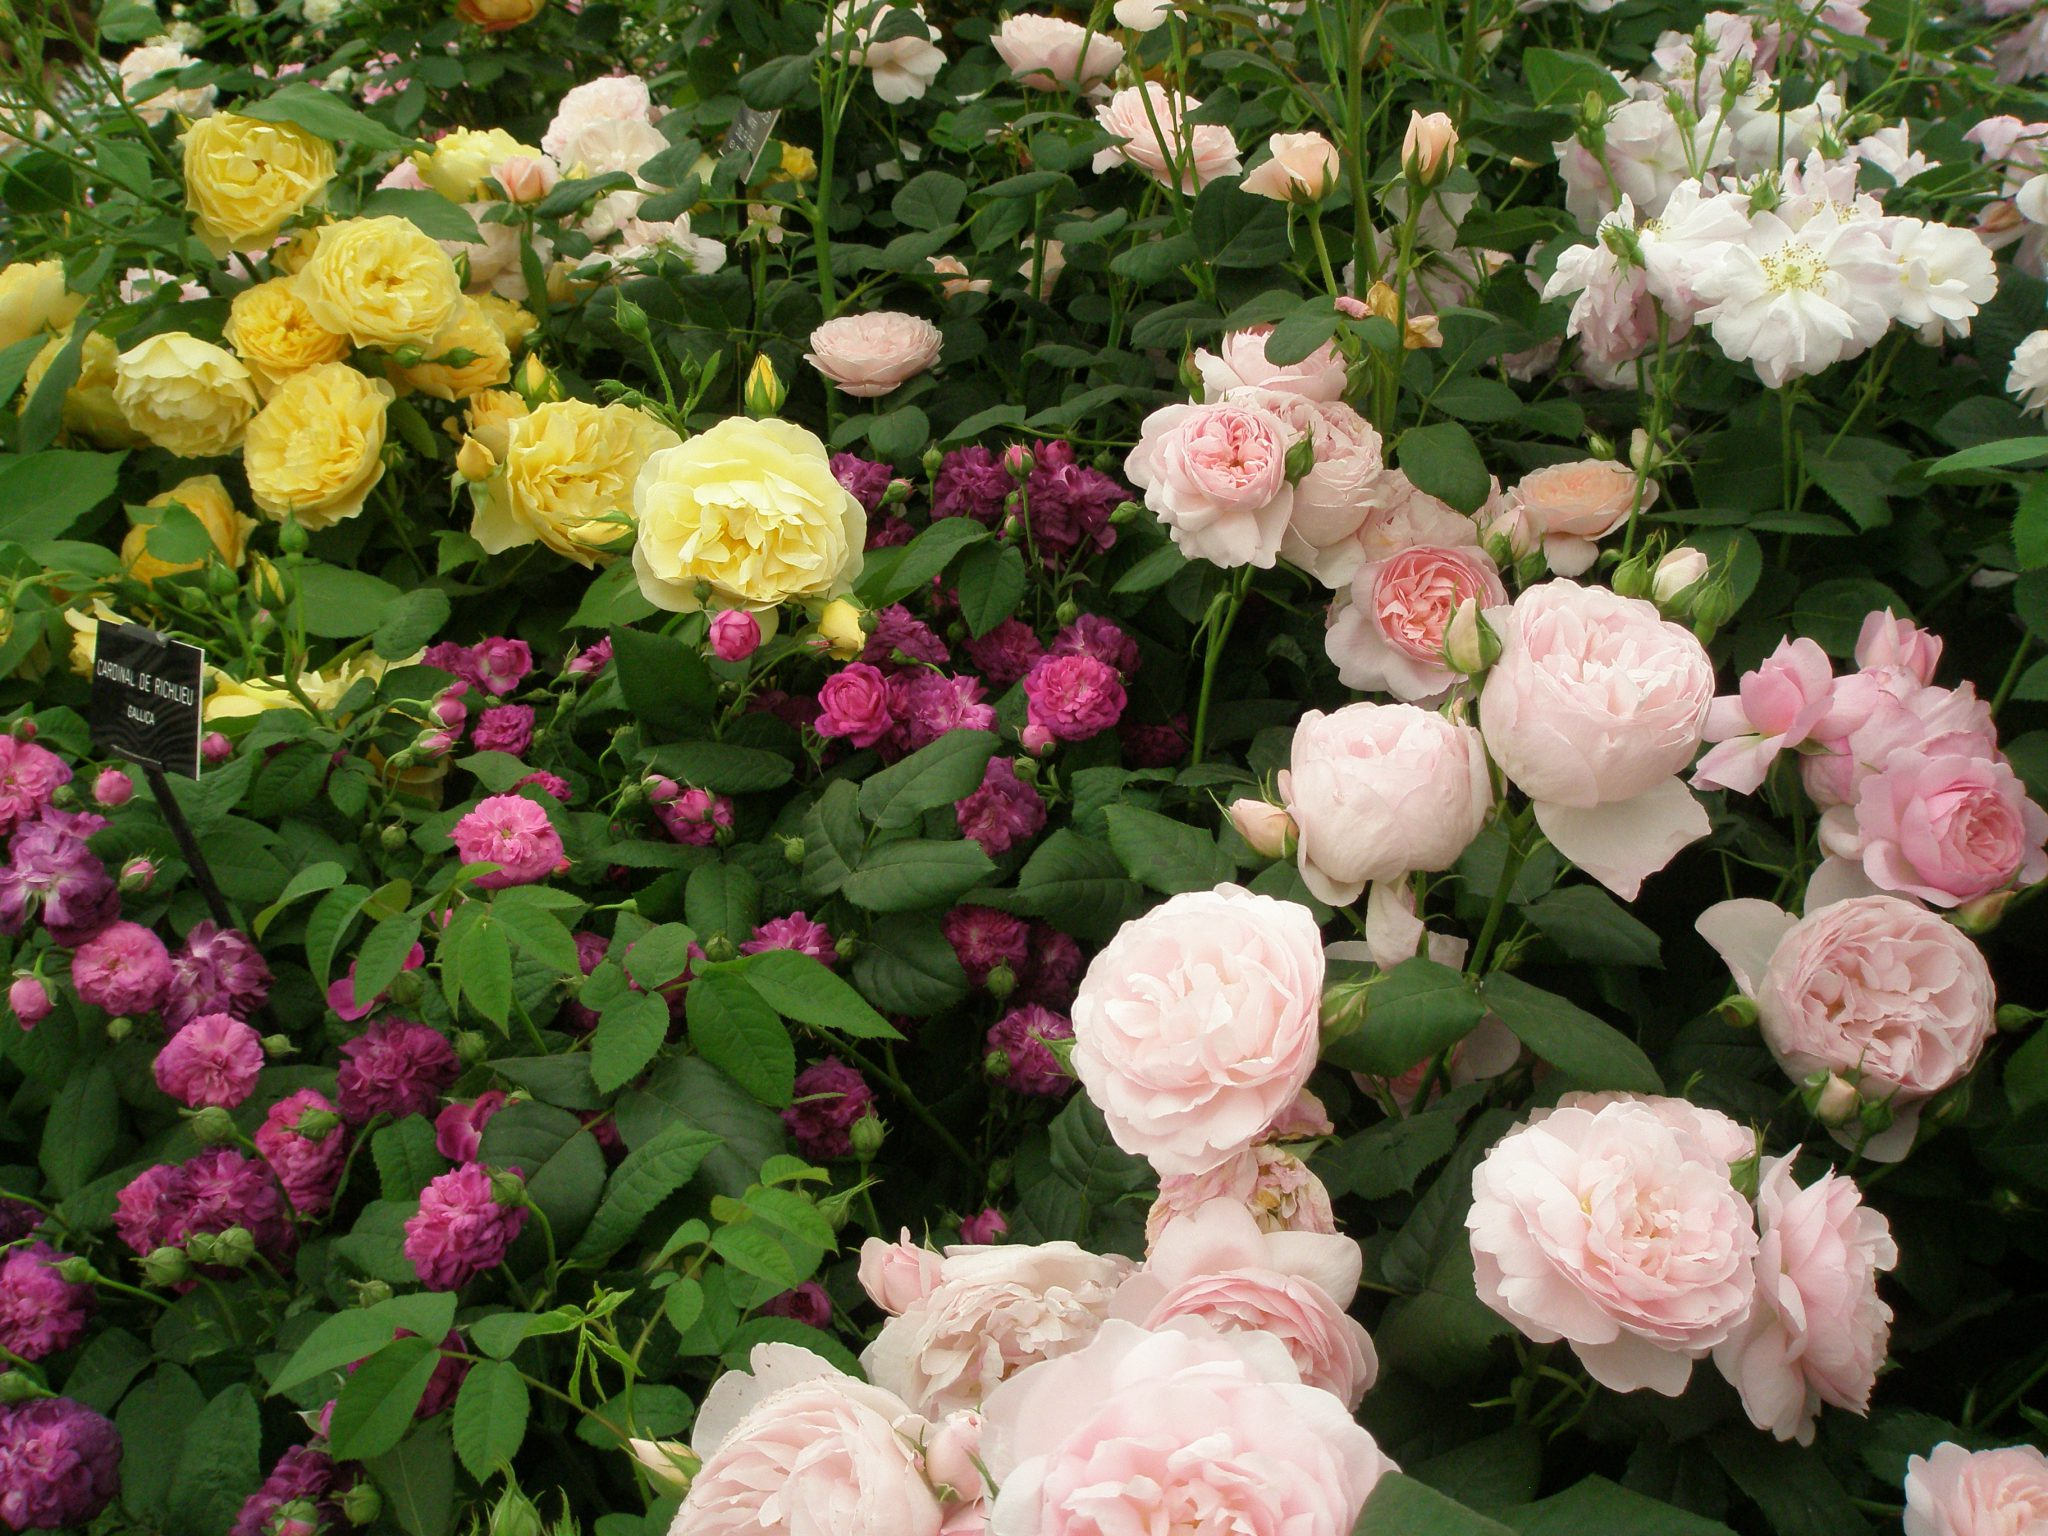 Why David Austin's roses are so sought-after